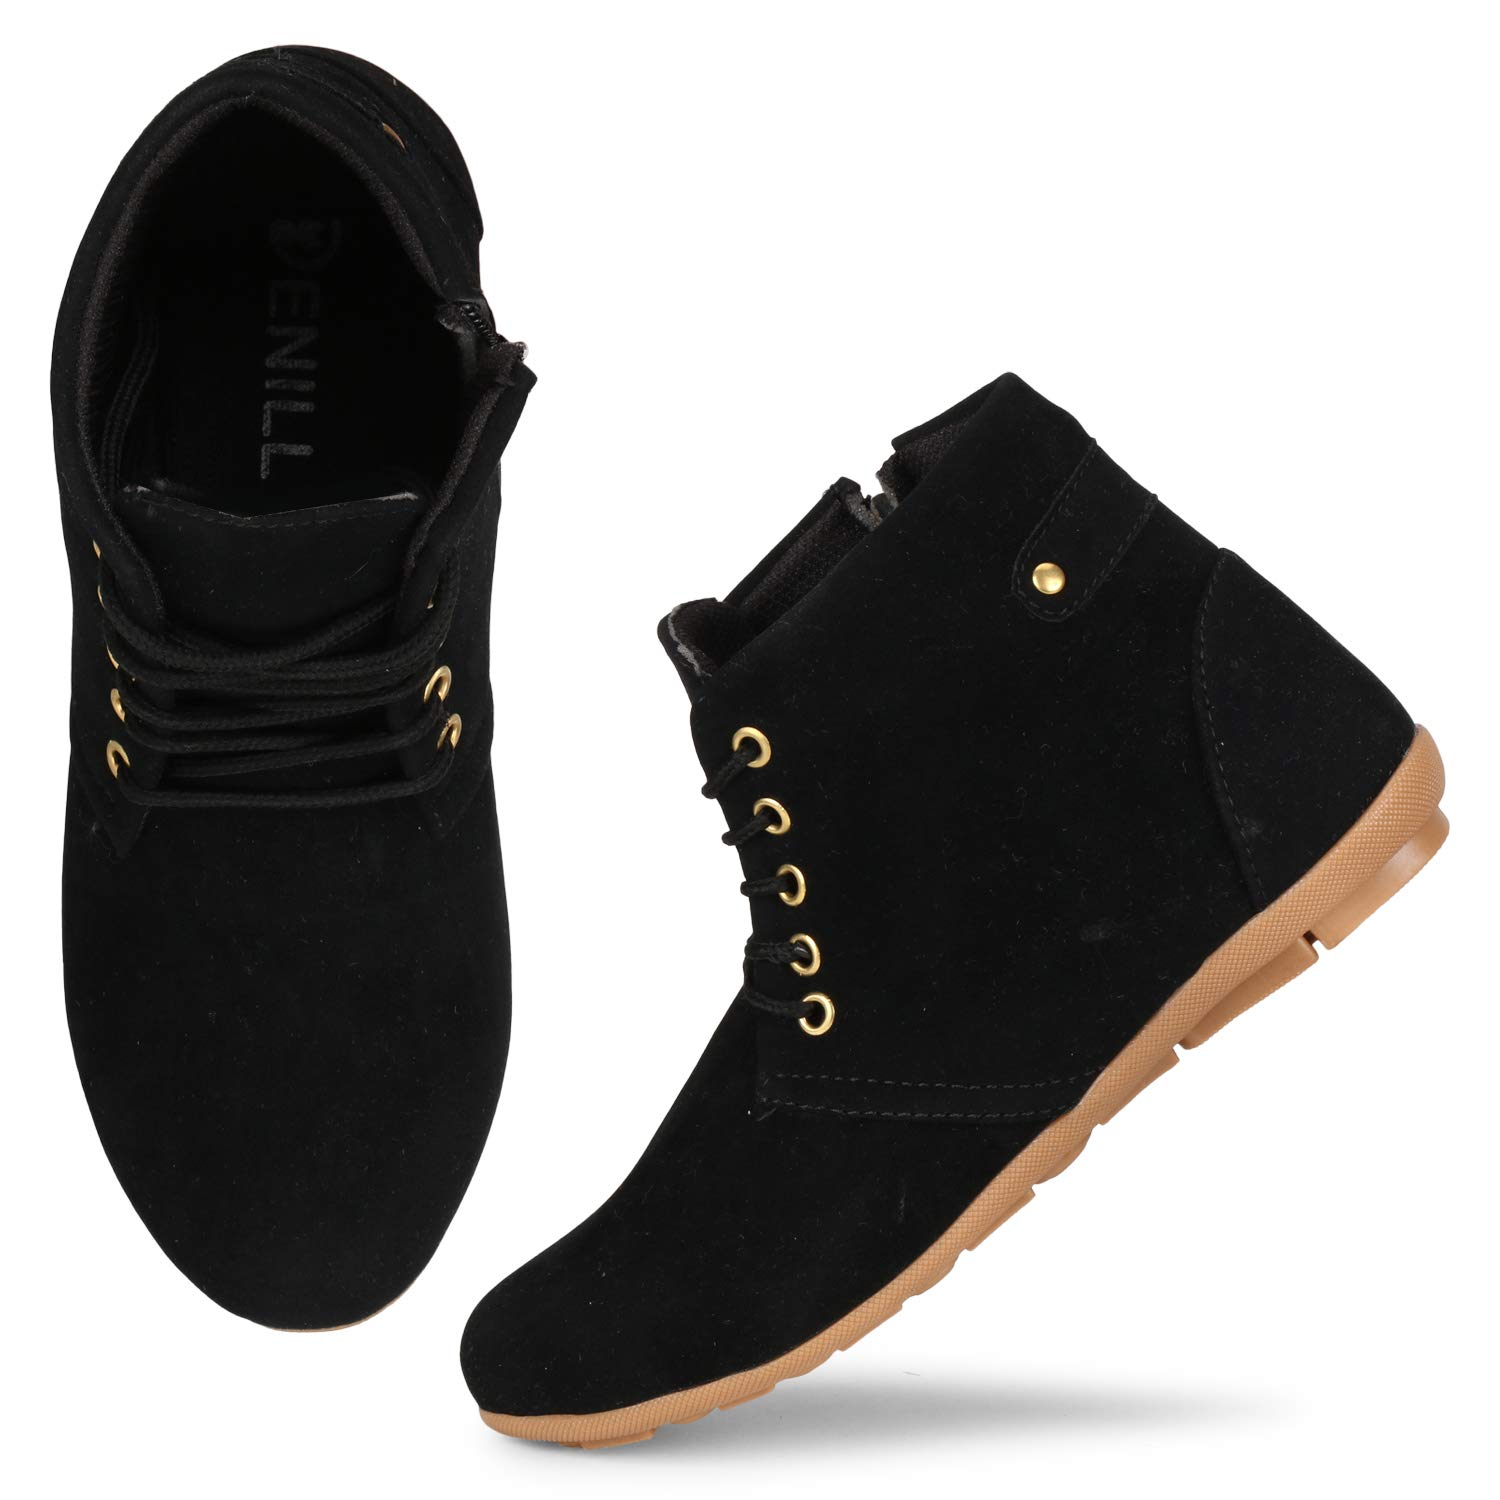 Denill Comfortable, Stylish Ankle Boots